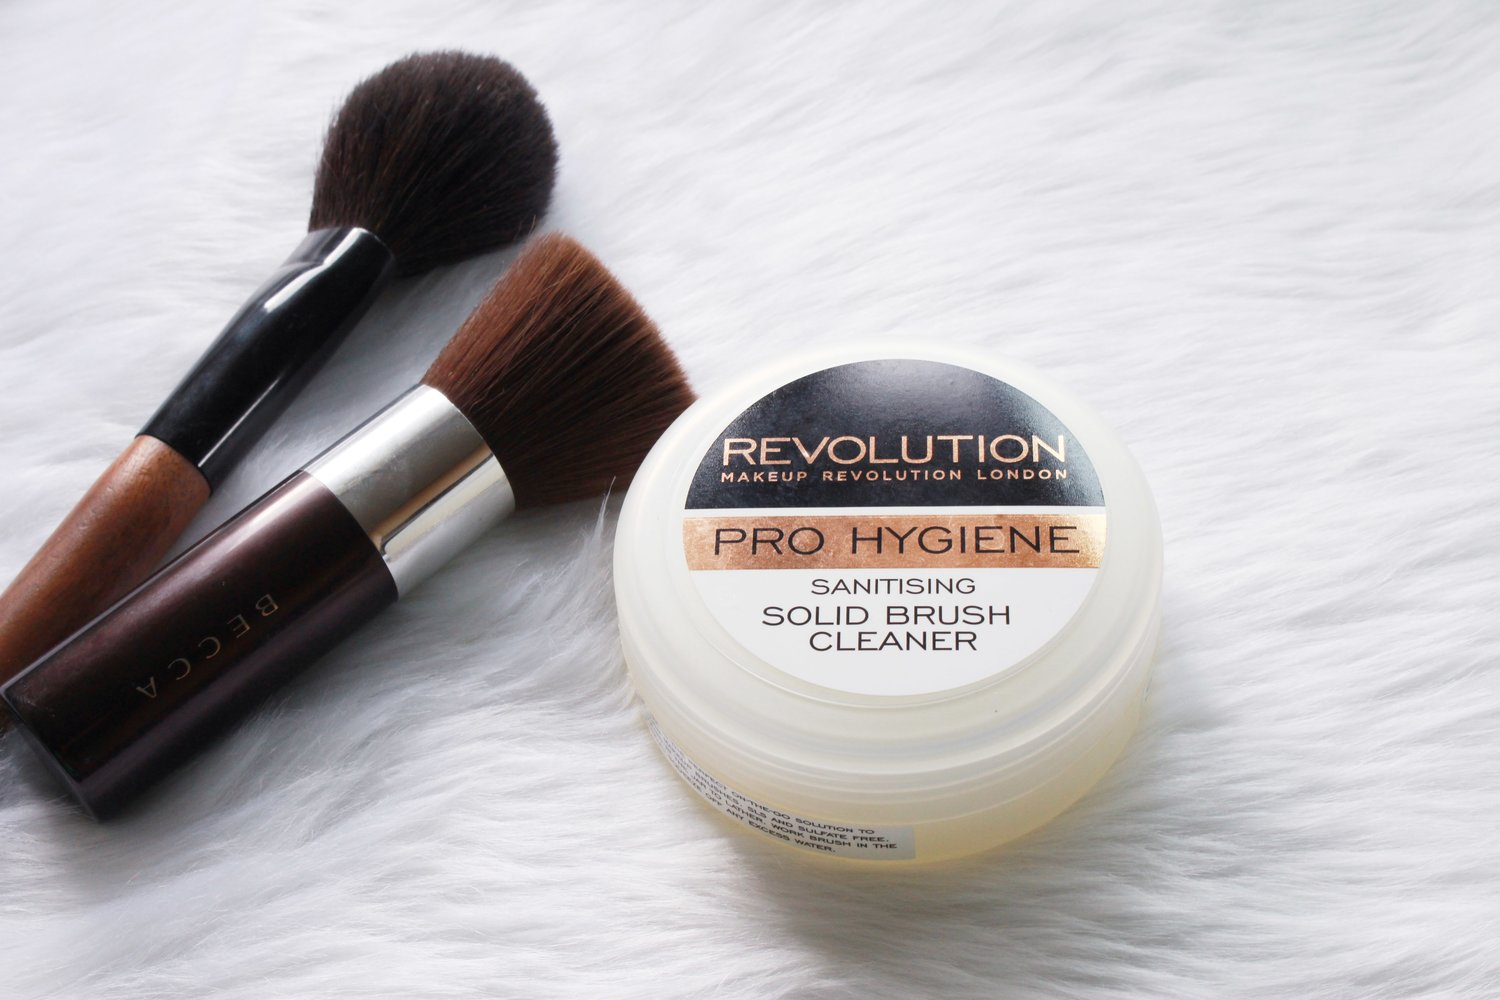 The Makeup Revolution Solid Brush Cleaner from Lannel Boutique